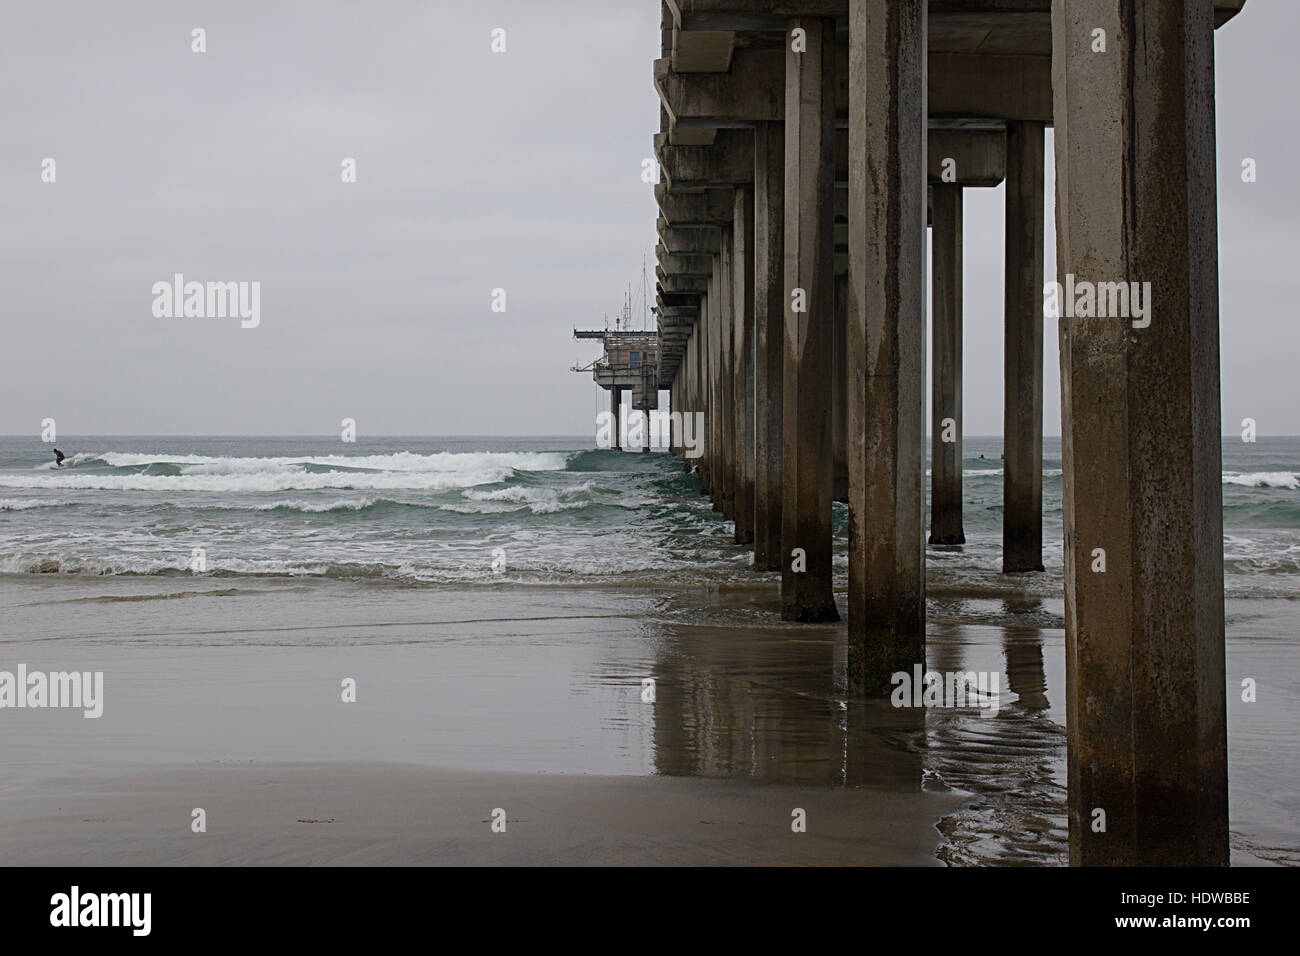 Side of the concrete Scripps Piers in La Jolla with ocean waves. Stock Photo